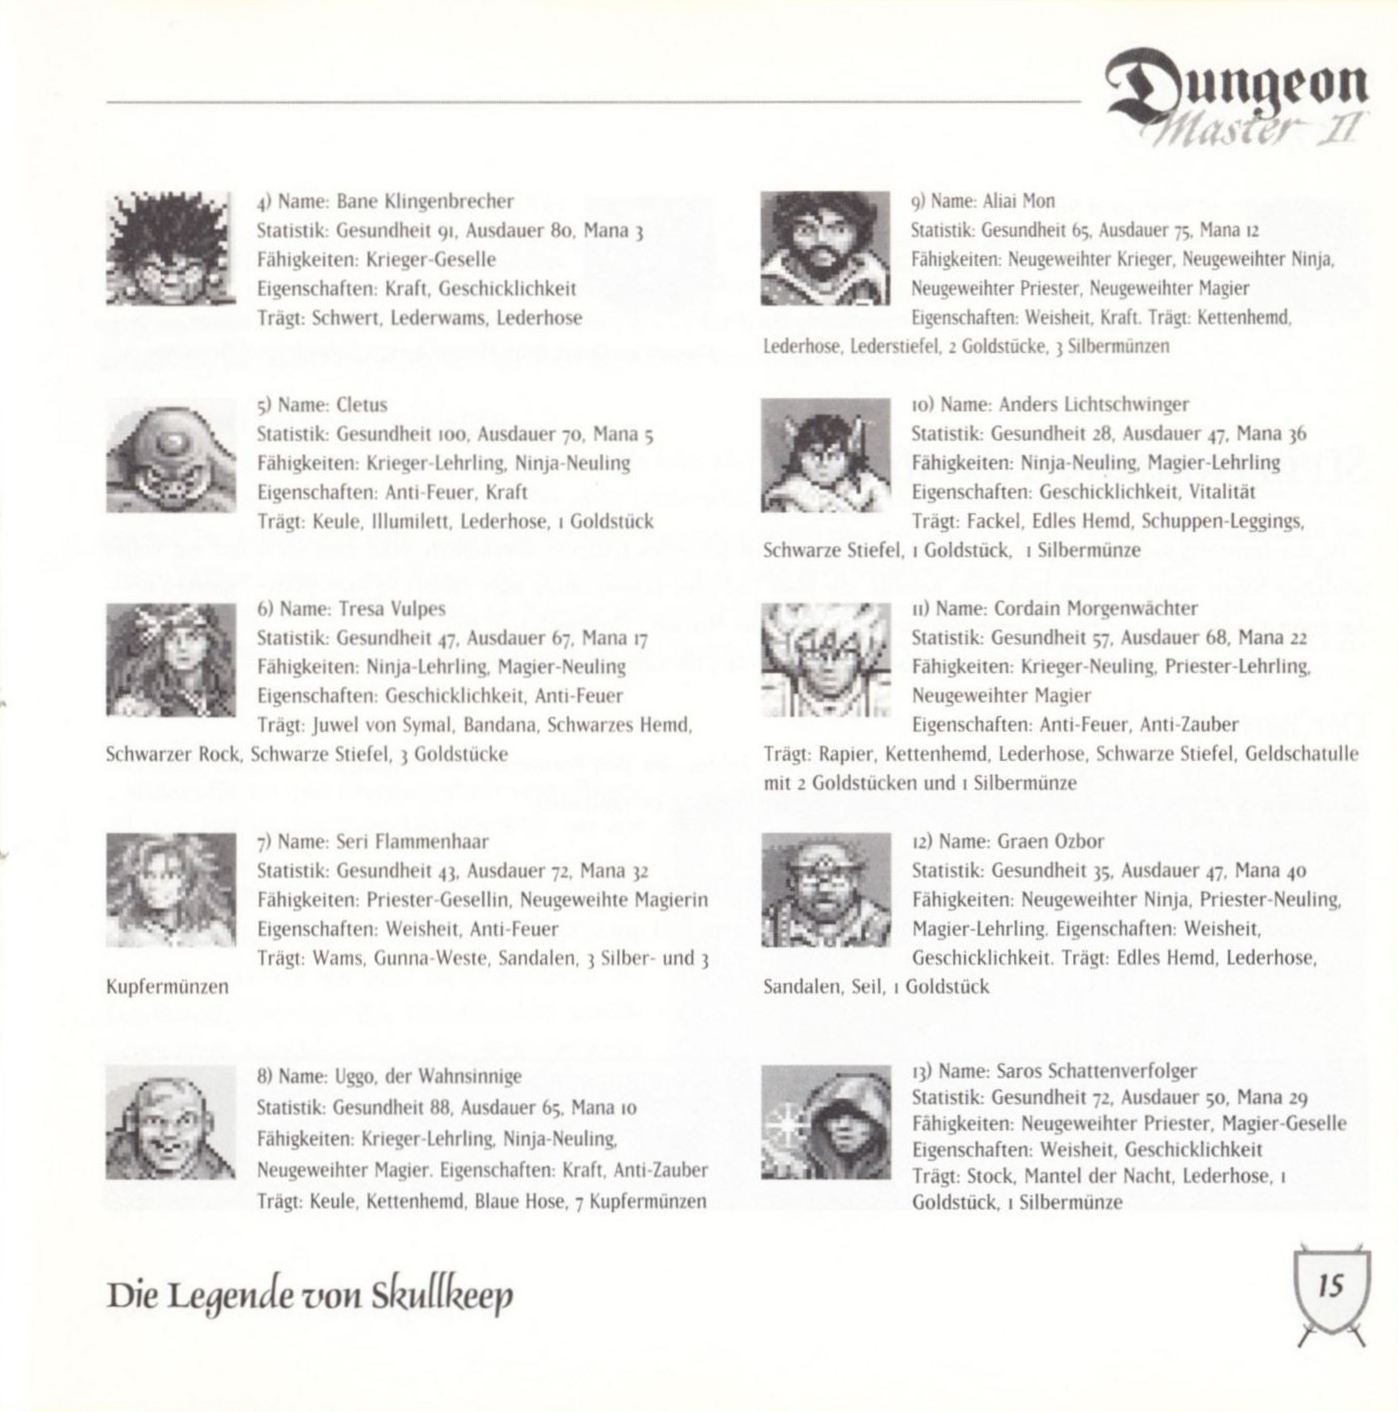 Game - Dungeon Master II - DE - PC - Blackmarket With Booklet - Booklet - Page 017 - Scan